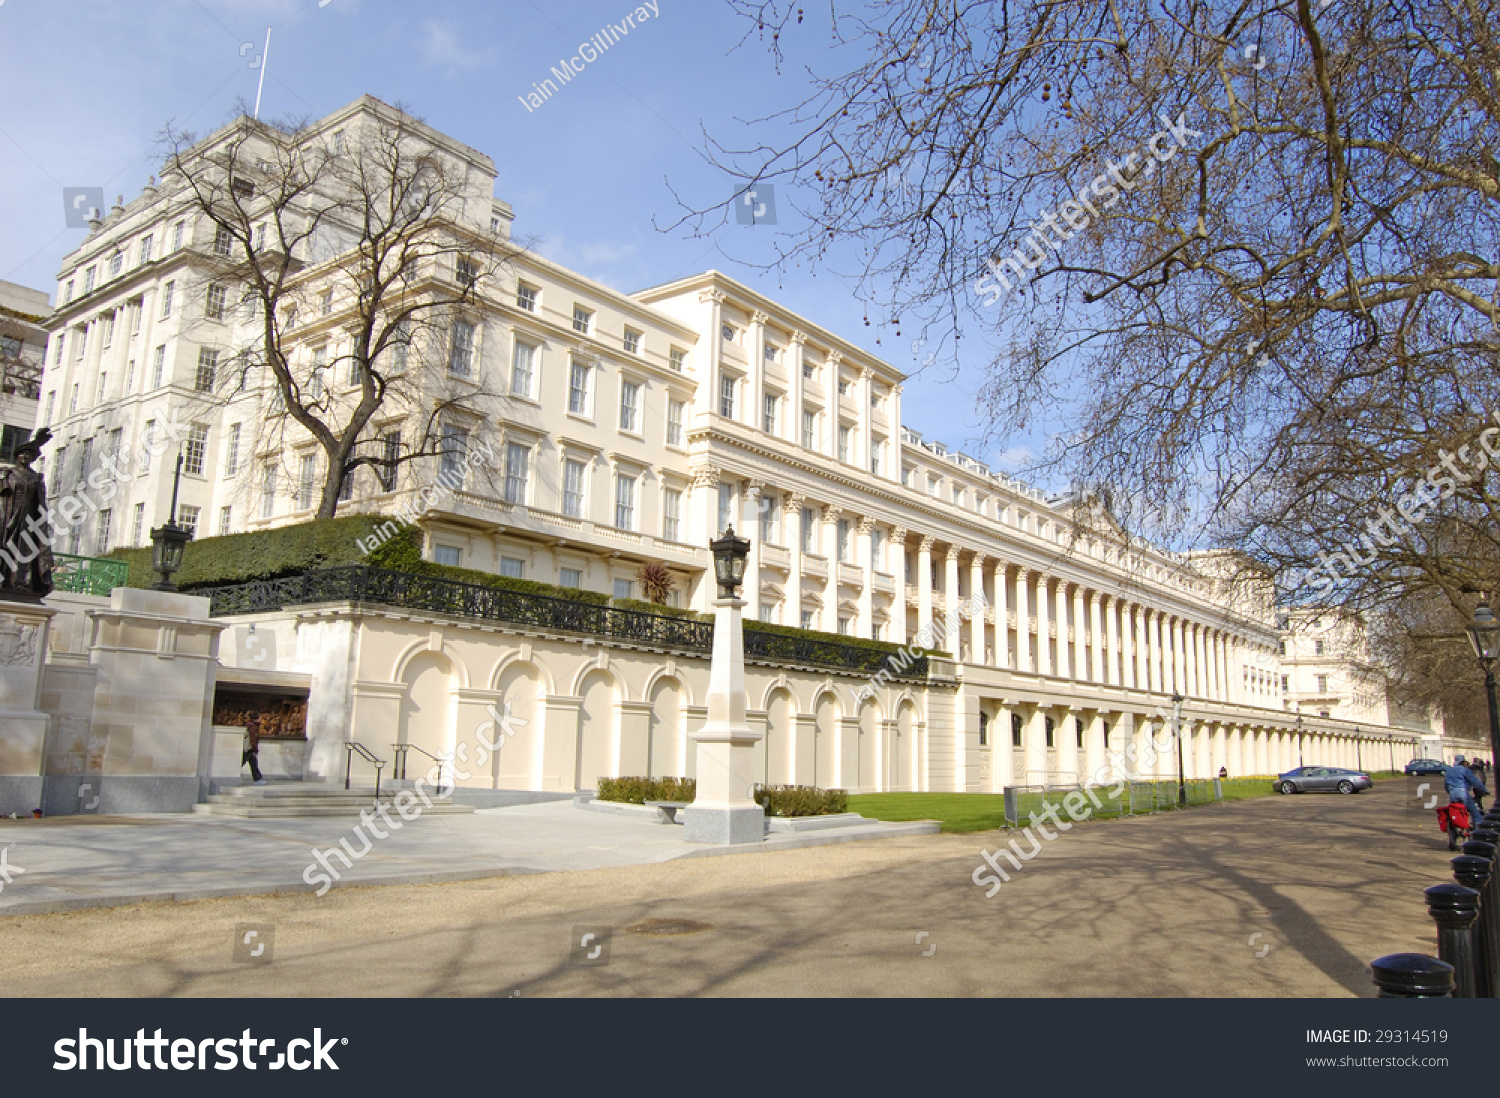 Carlton house terrace mall london england stock photo for 18 carlton house terrace